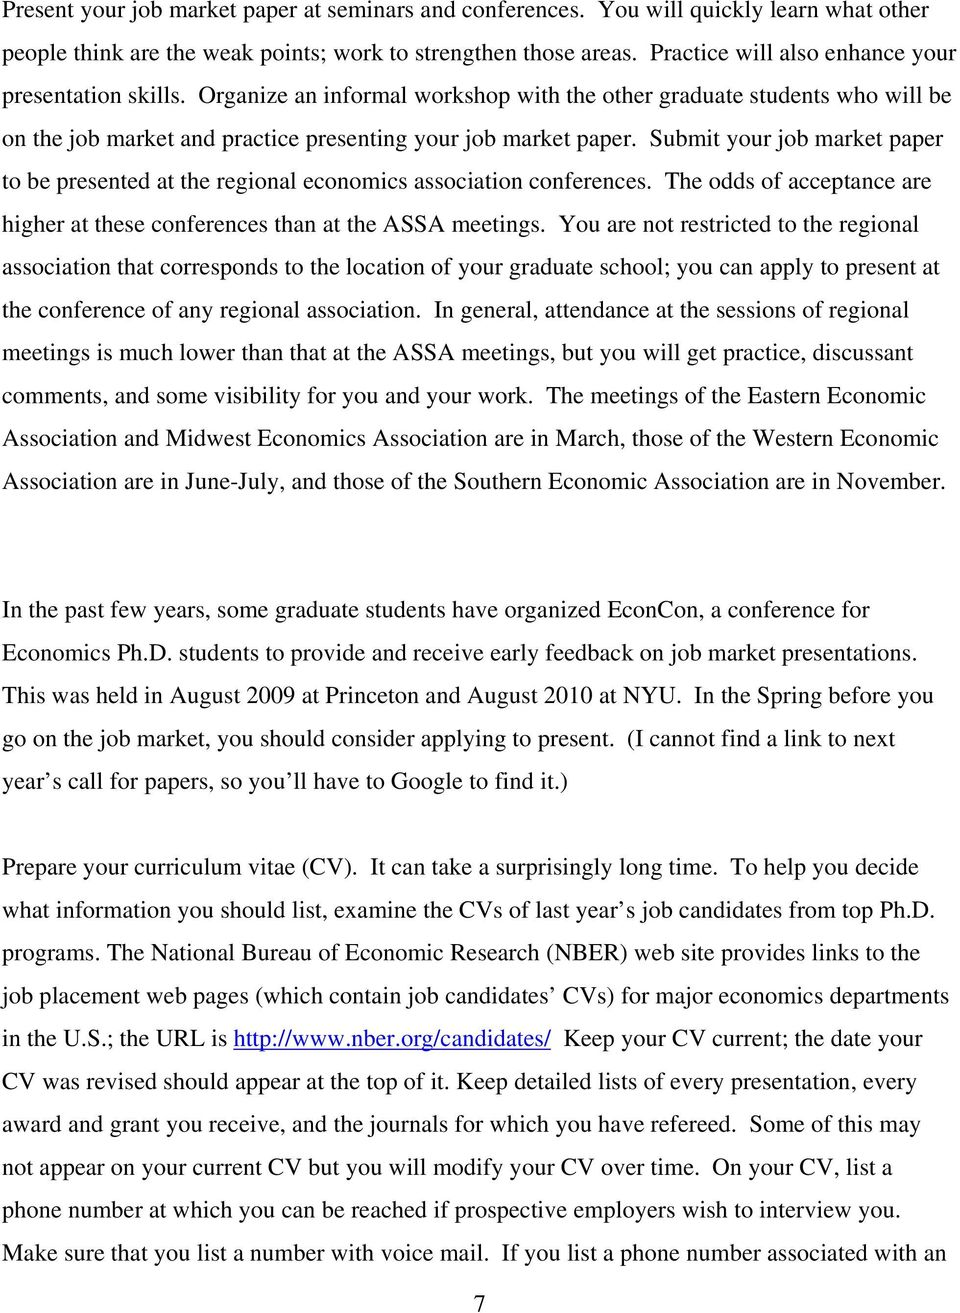 Submit your job market paper to be presented at the regional economics association conferences. The odds of acceptance are higher at these conferences than at the ASSA meetings.